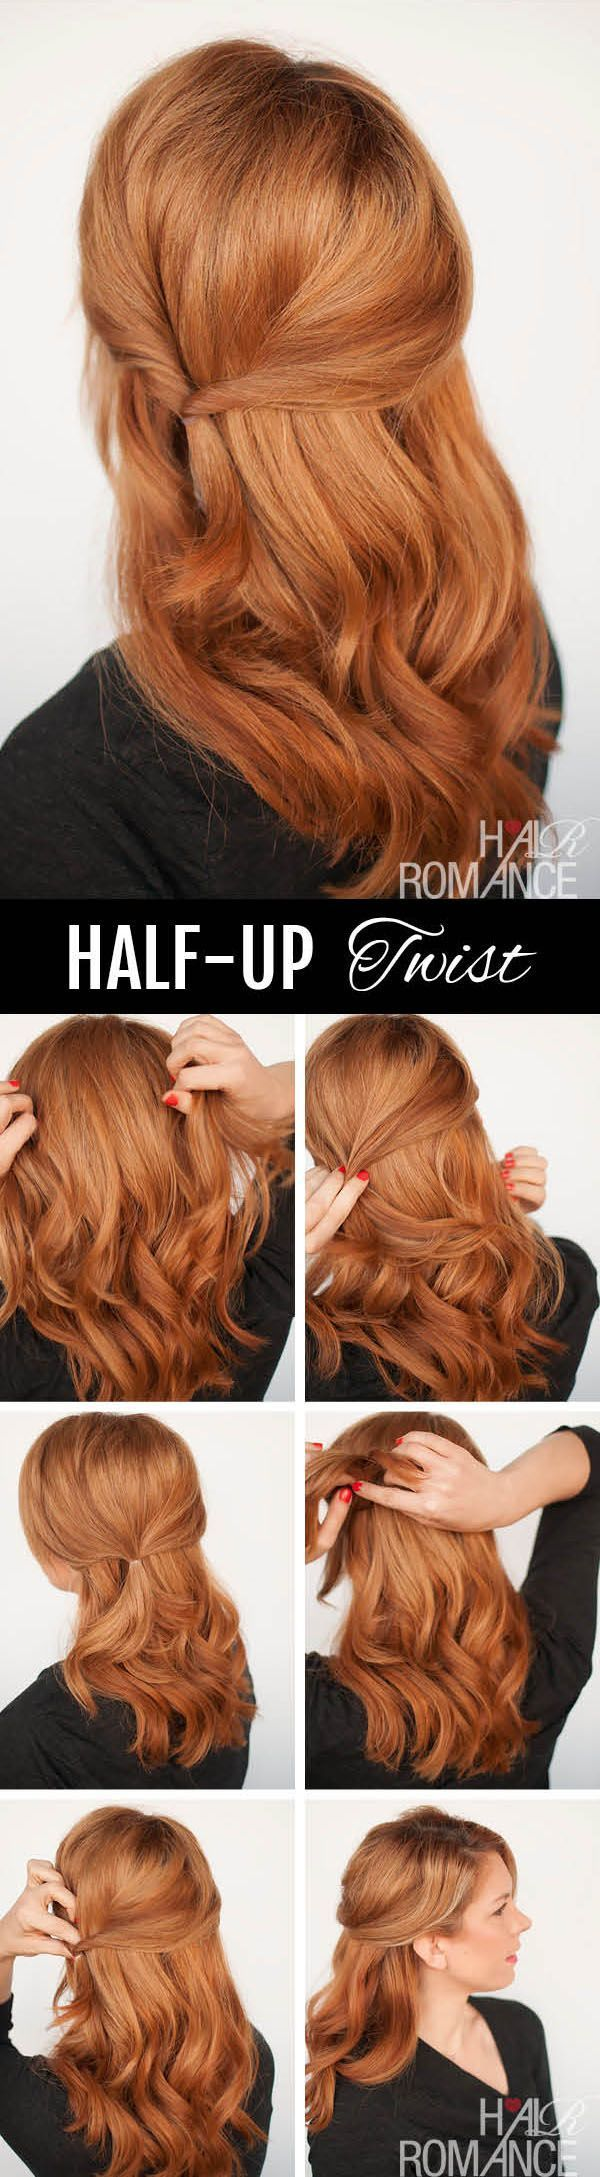 Wedding hairstyles half up half down halfup twist hairstyle